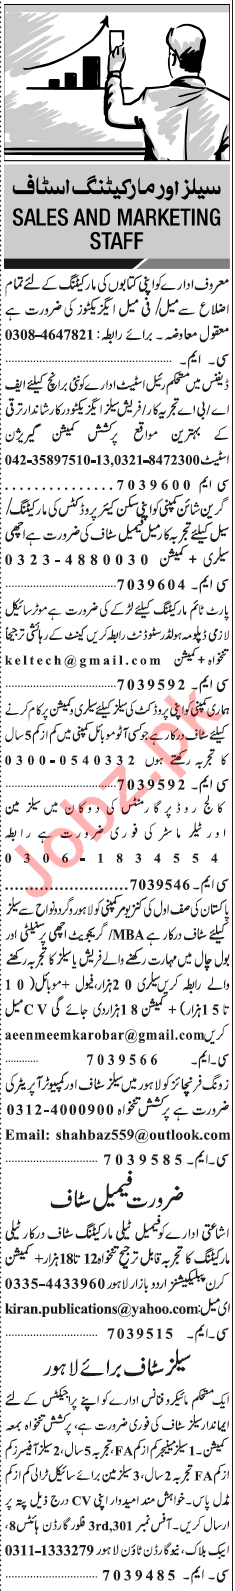 Daily Jang Classified Jobs 2018 for Sales & Marketing Staff